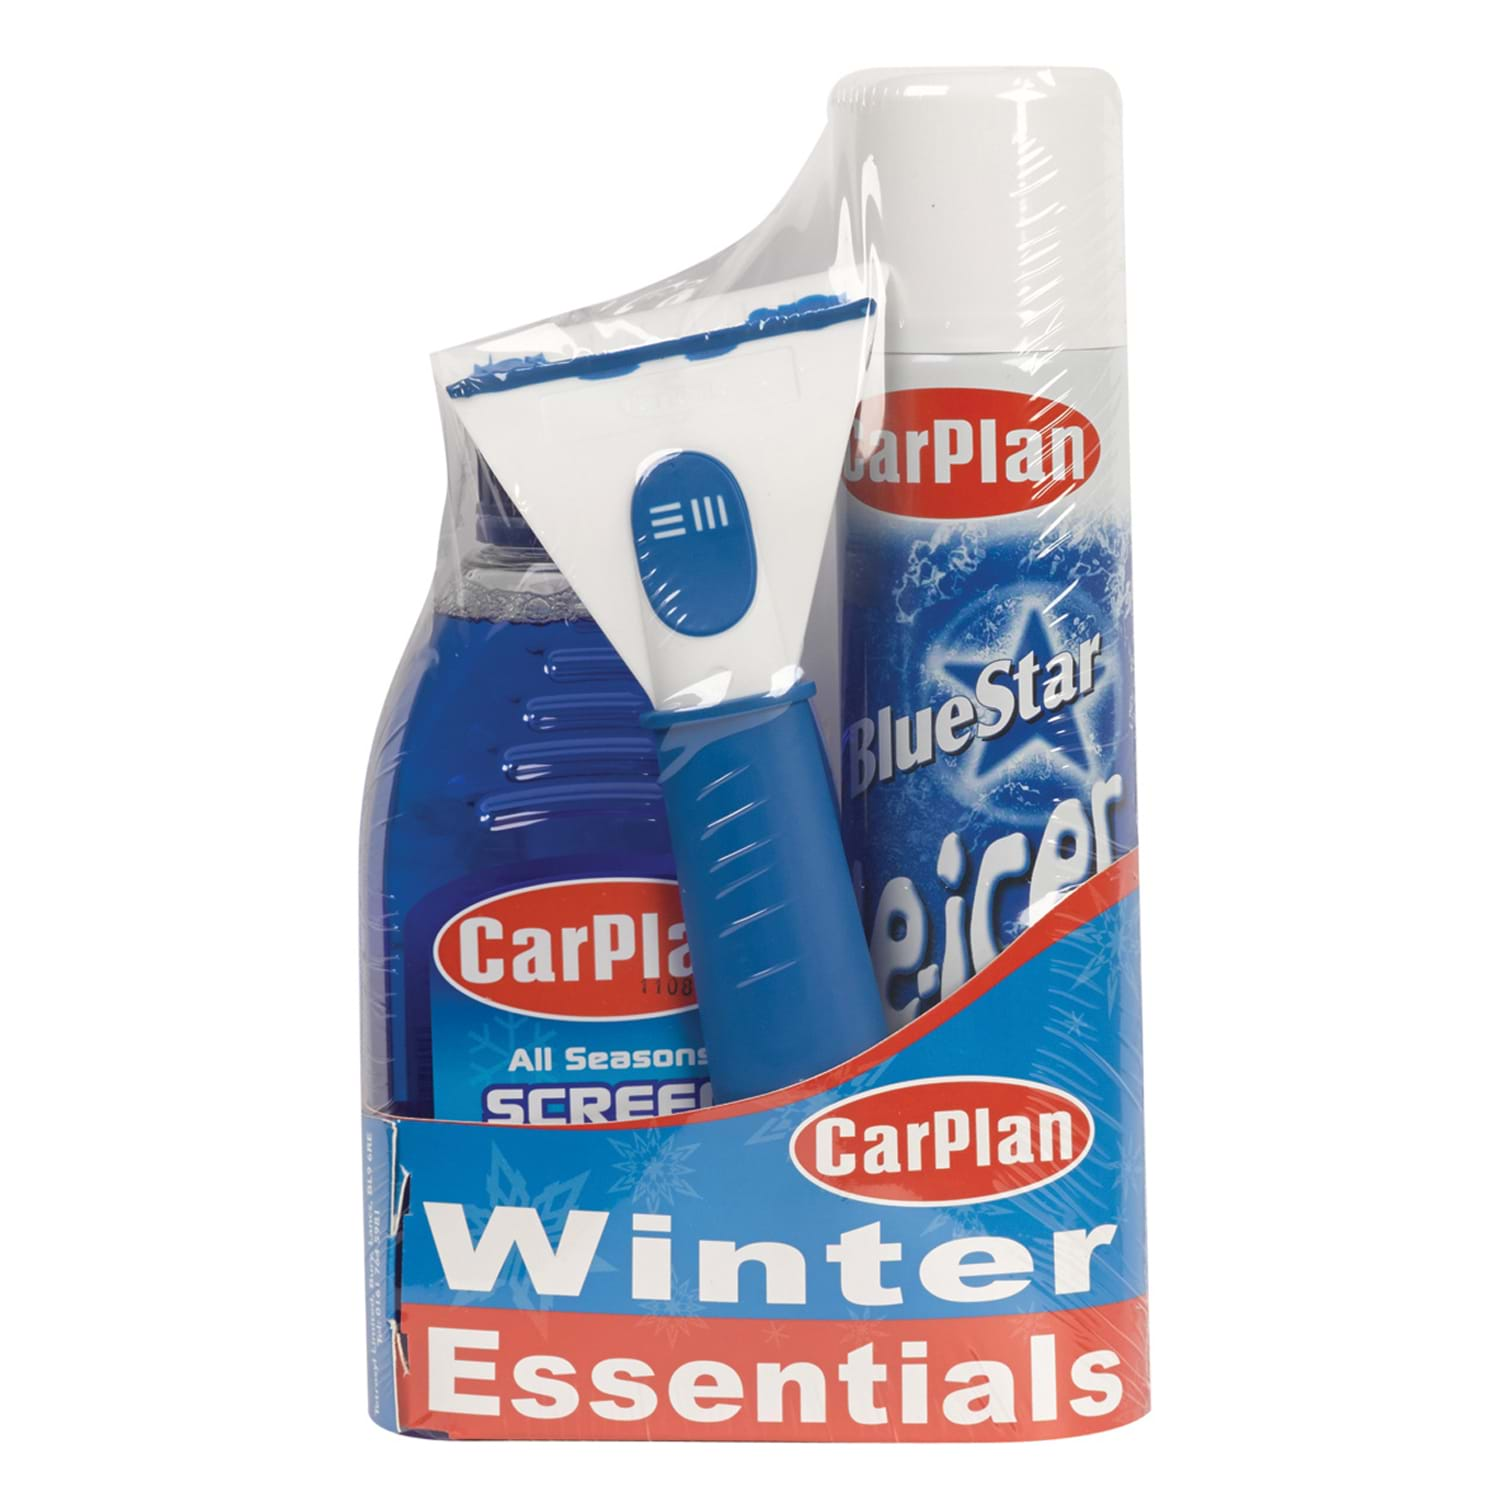 Image of Bluecol Winter Essential Pack